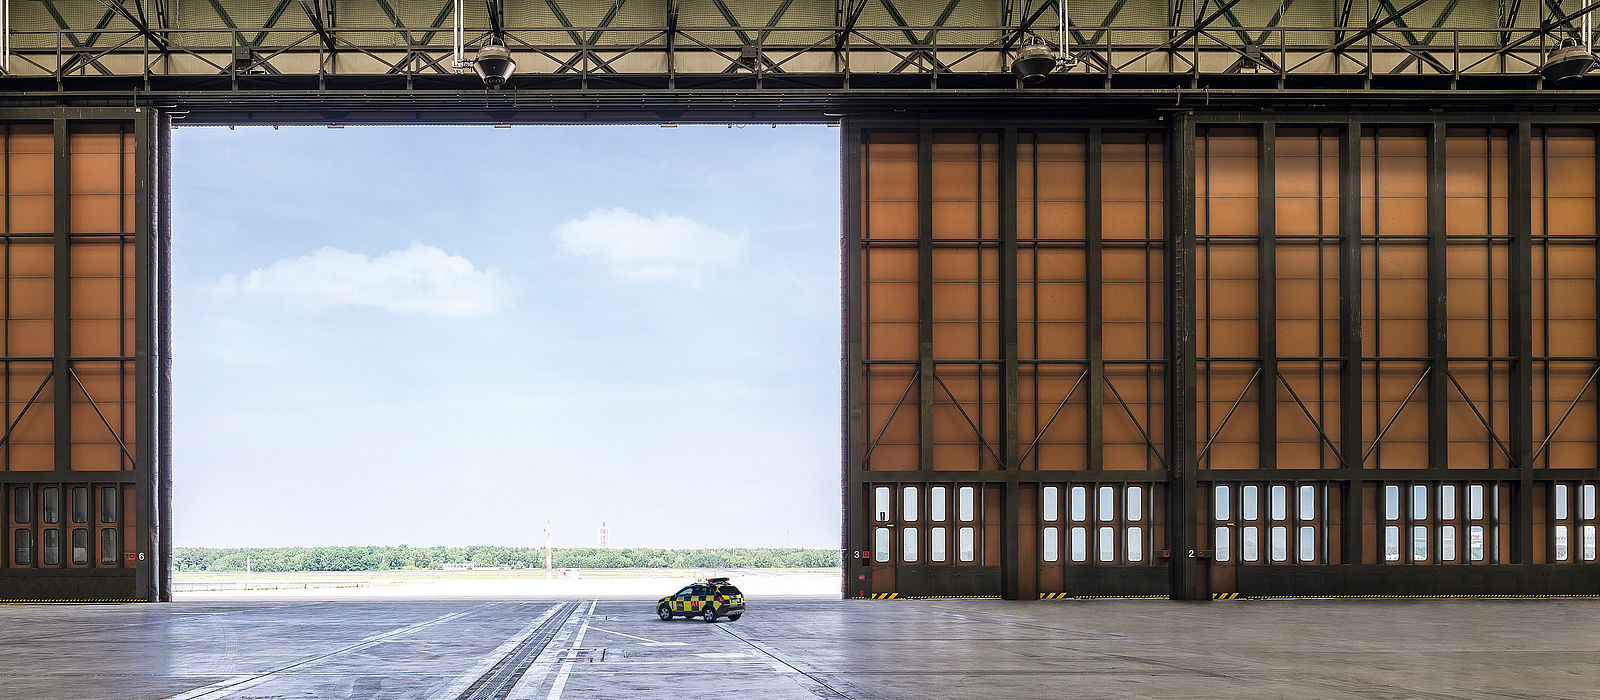 Hangar, view from the inside through the open gate